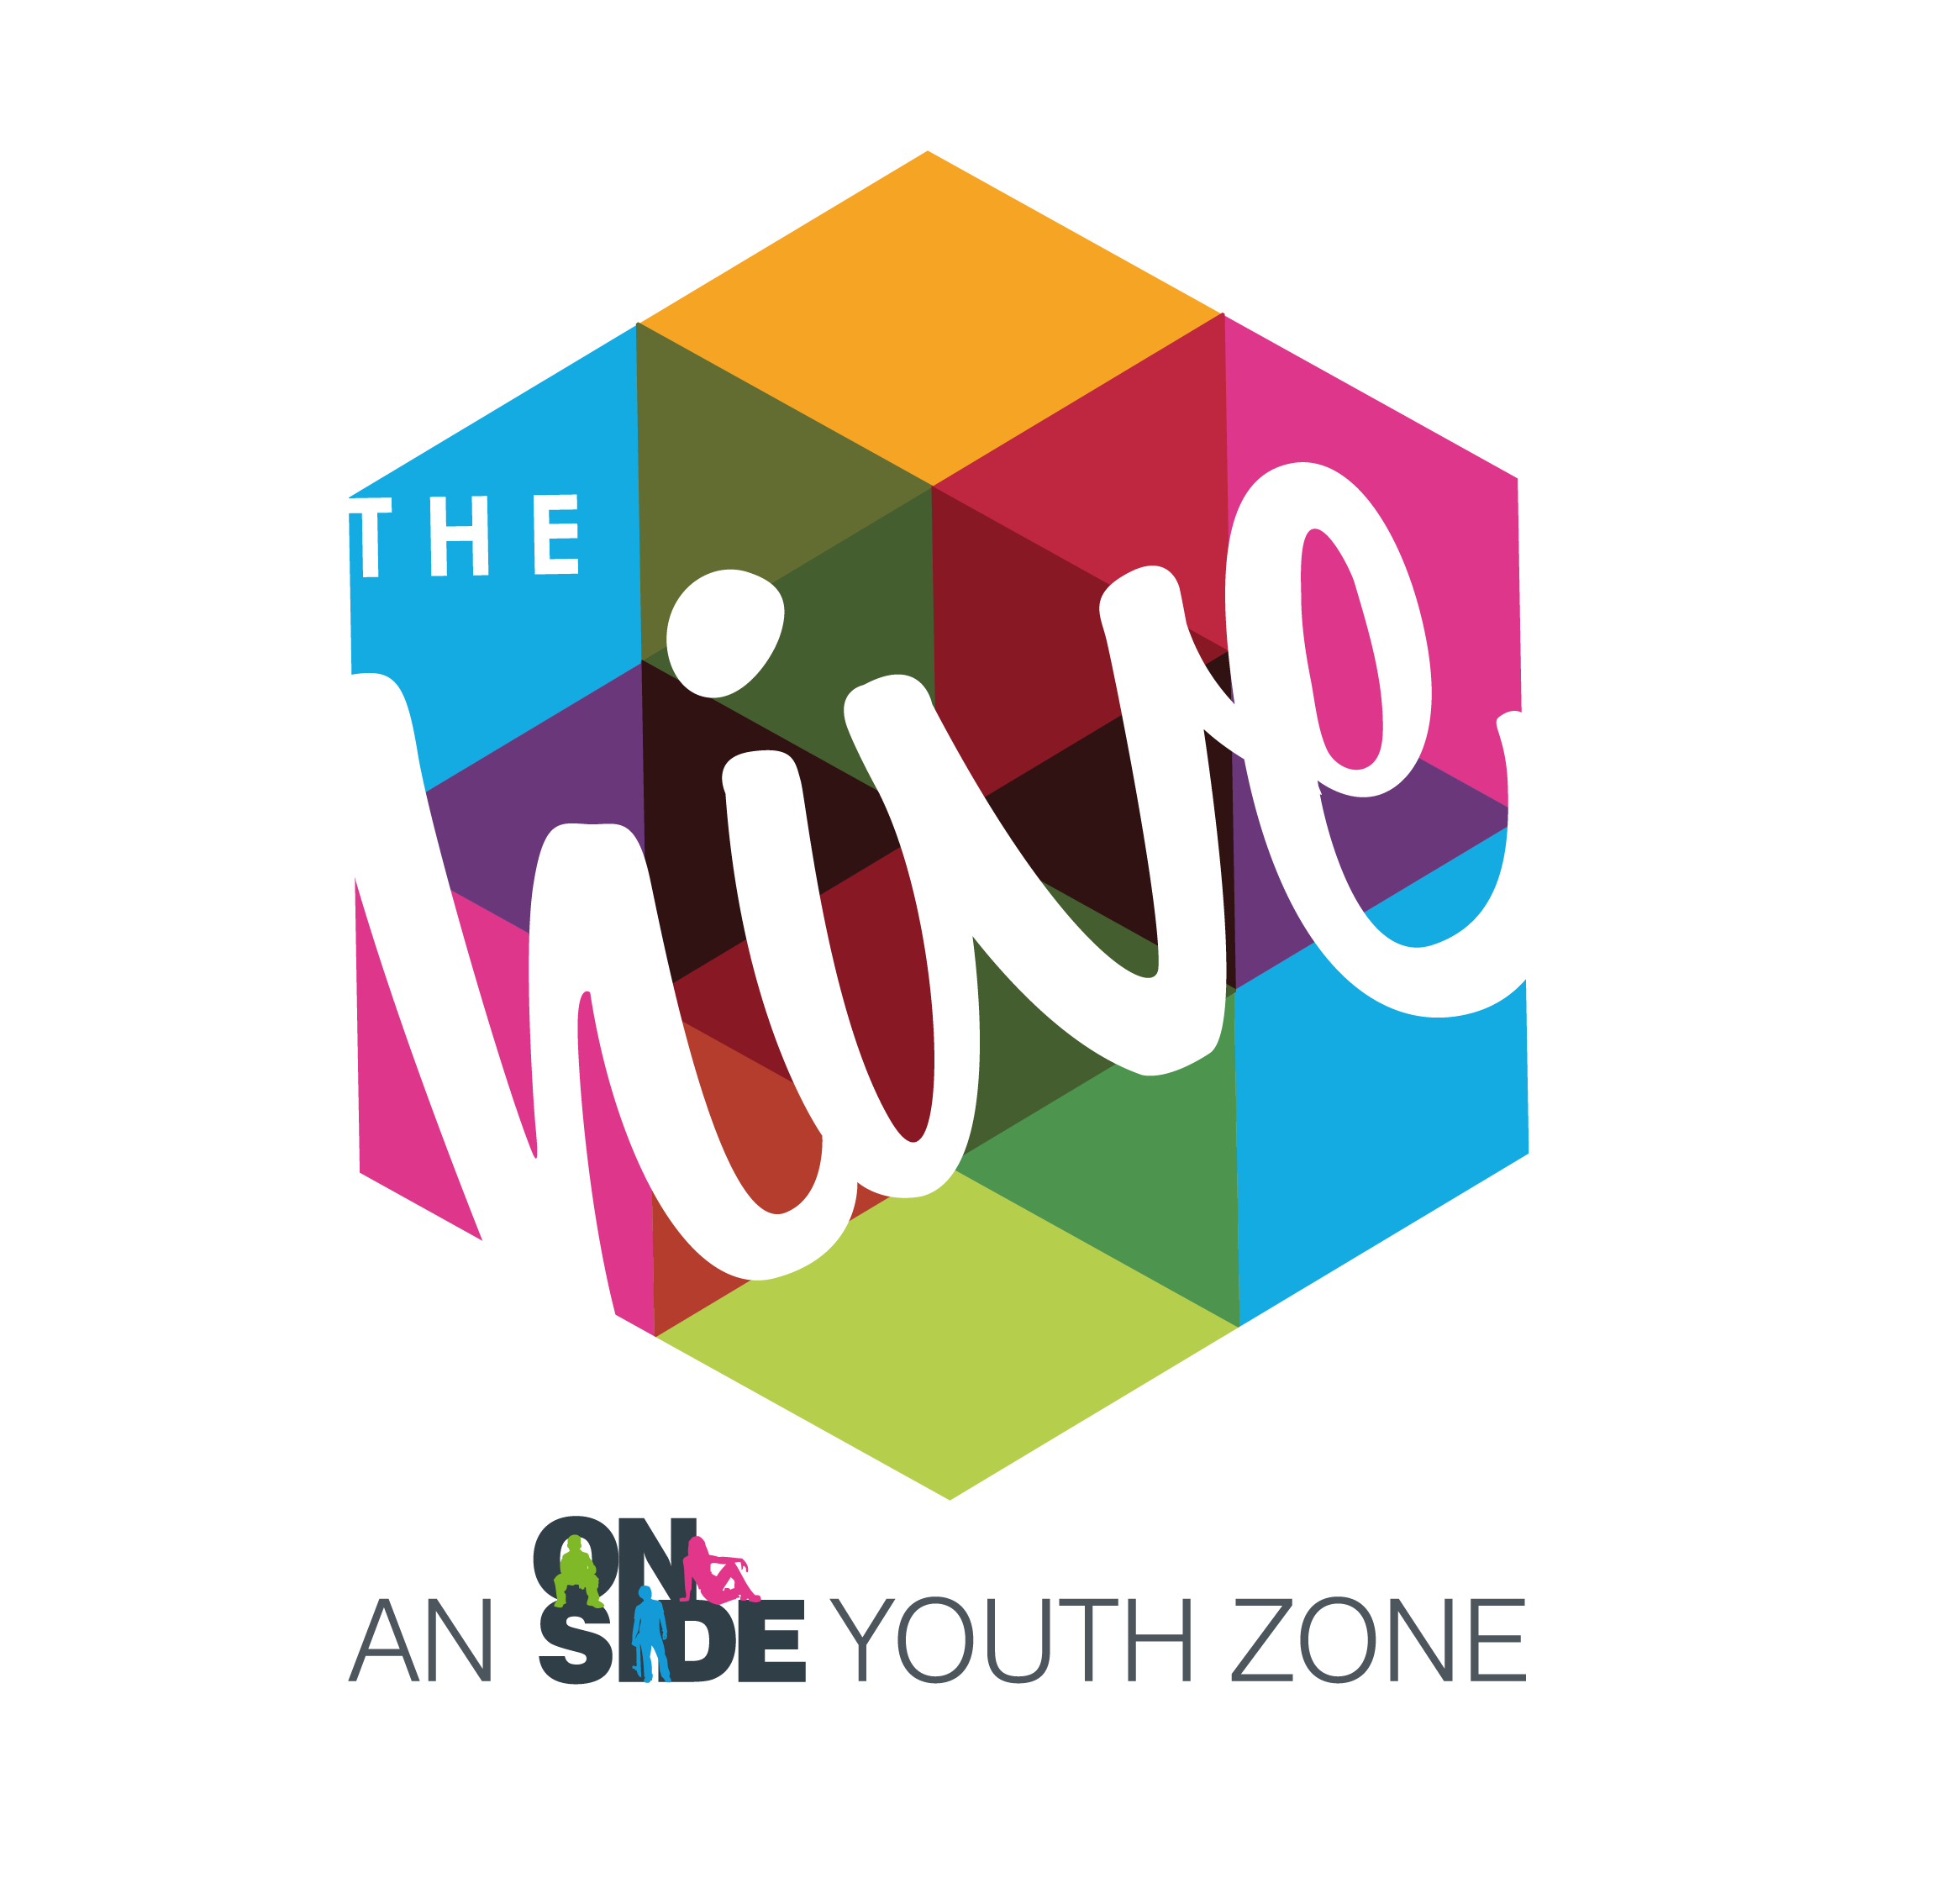 The Hive Youth Zone